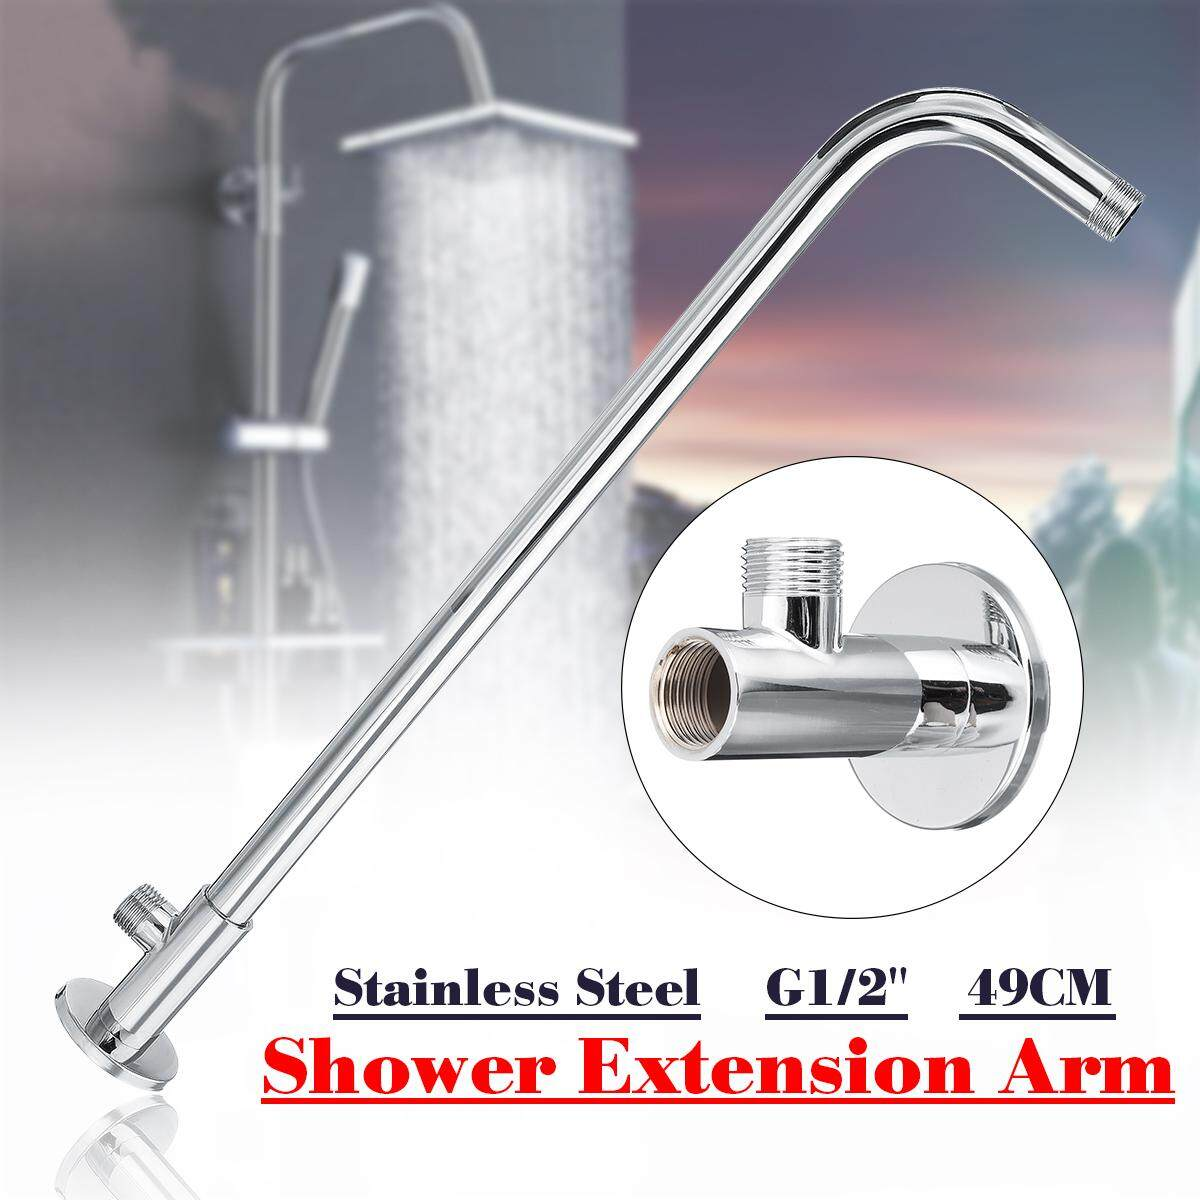 Stainless Steel Wall Shower Head Extension Pipe Long Arm Mounted Bathroom+base By Paidbang.